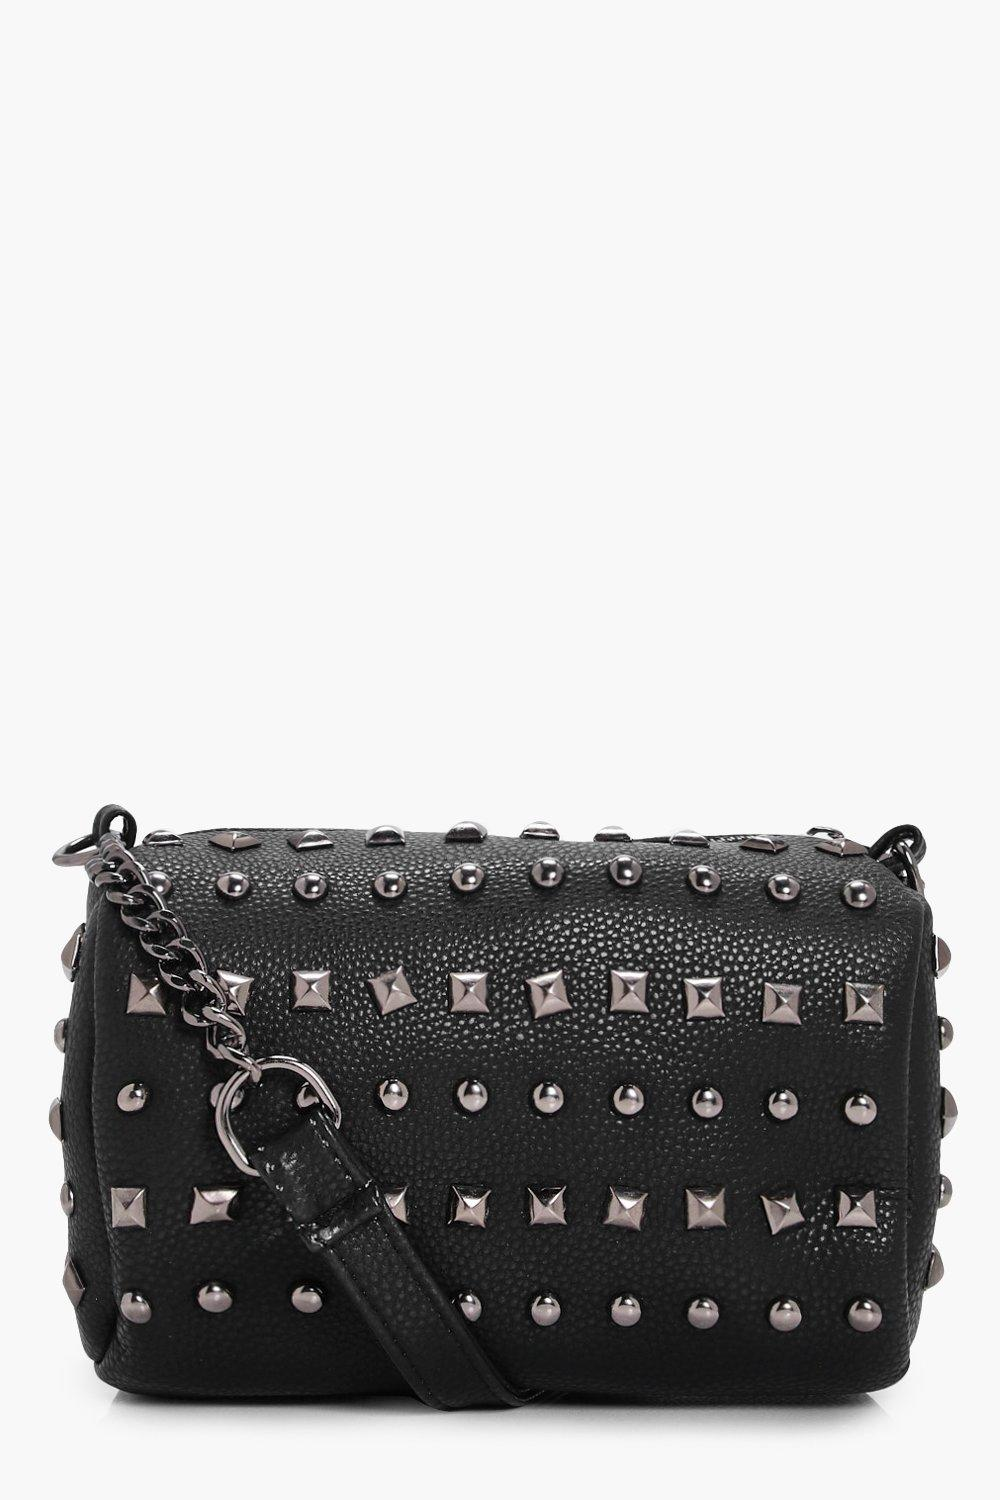 Multi Stud Cross Body - black - Josie Multi Stud C